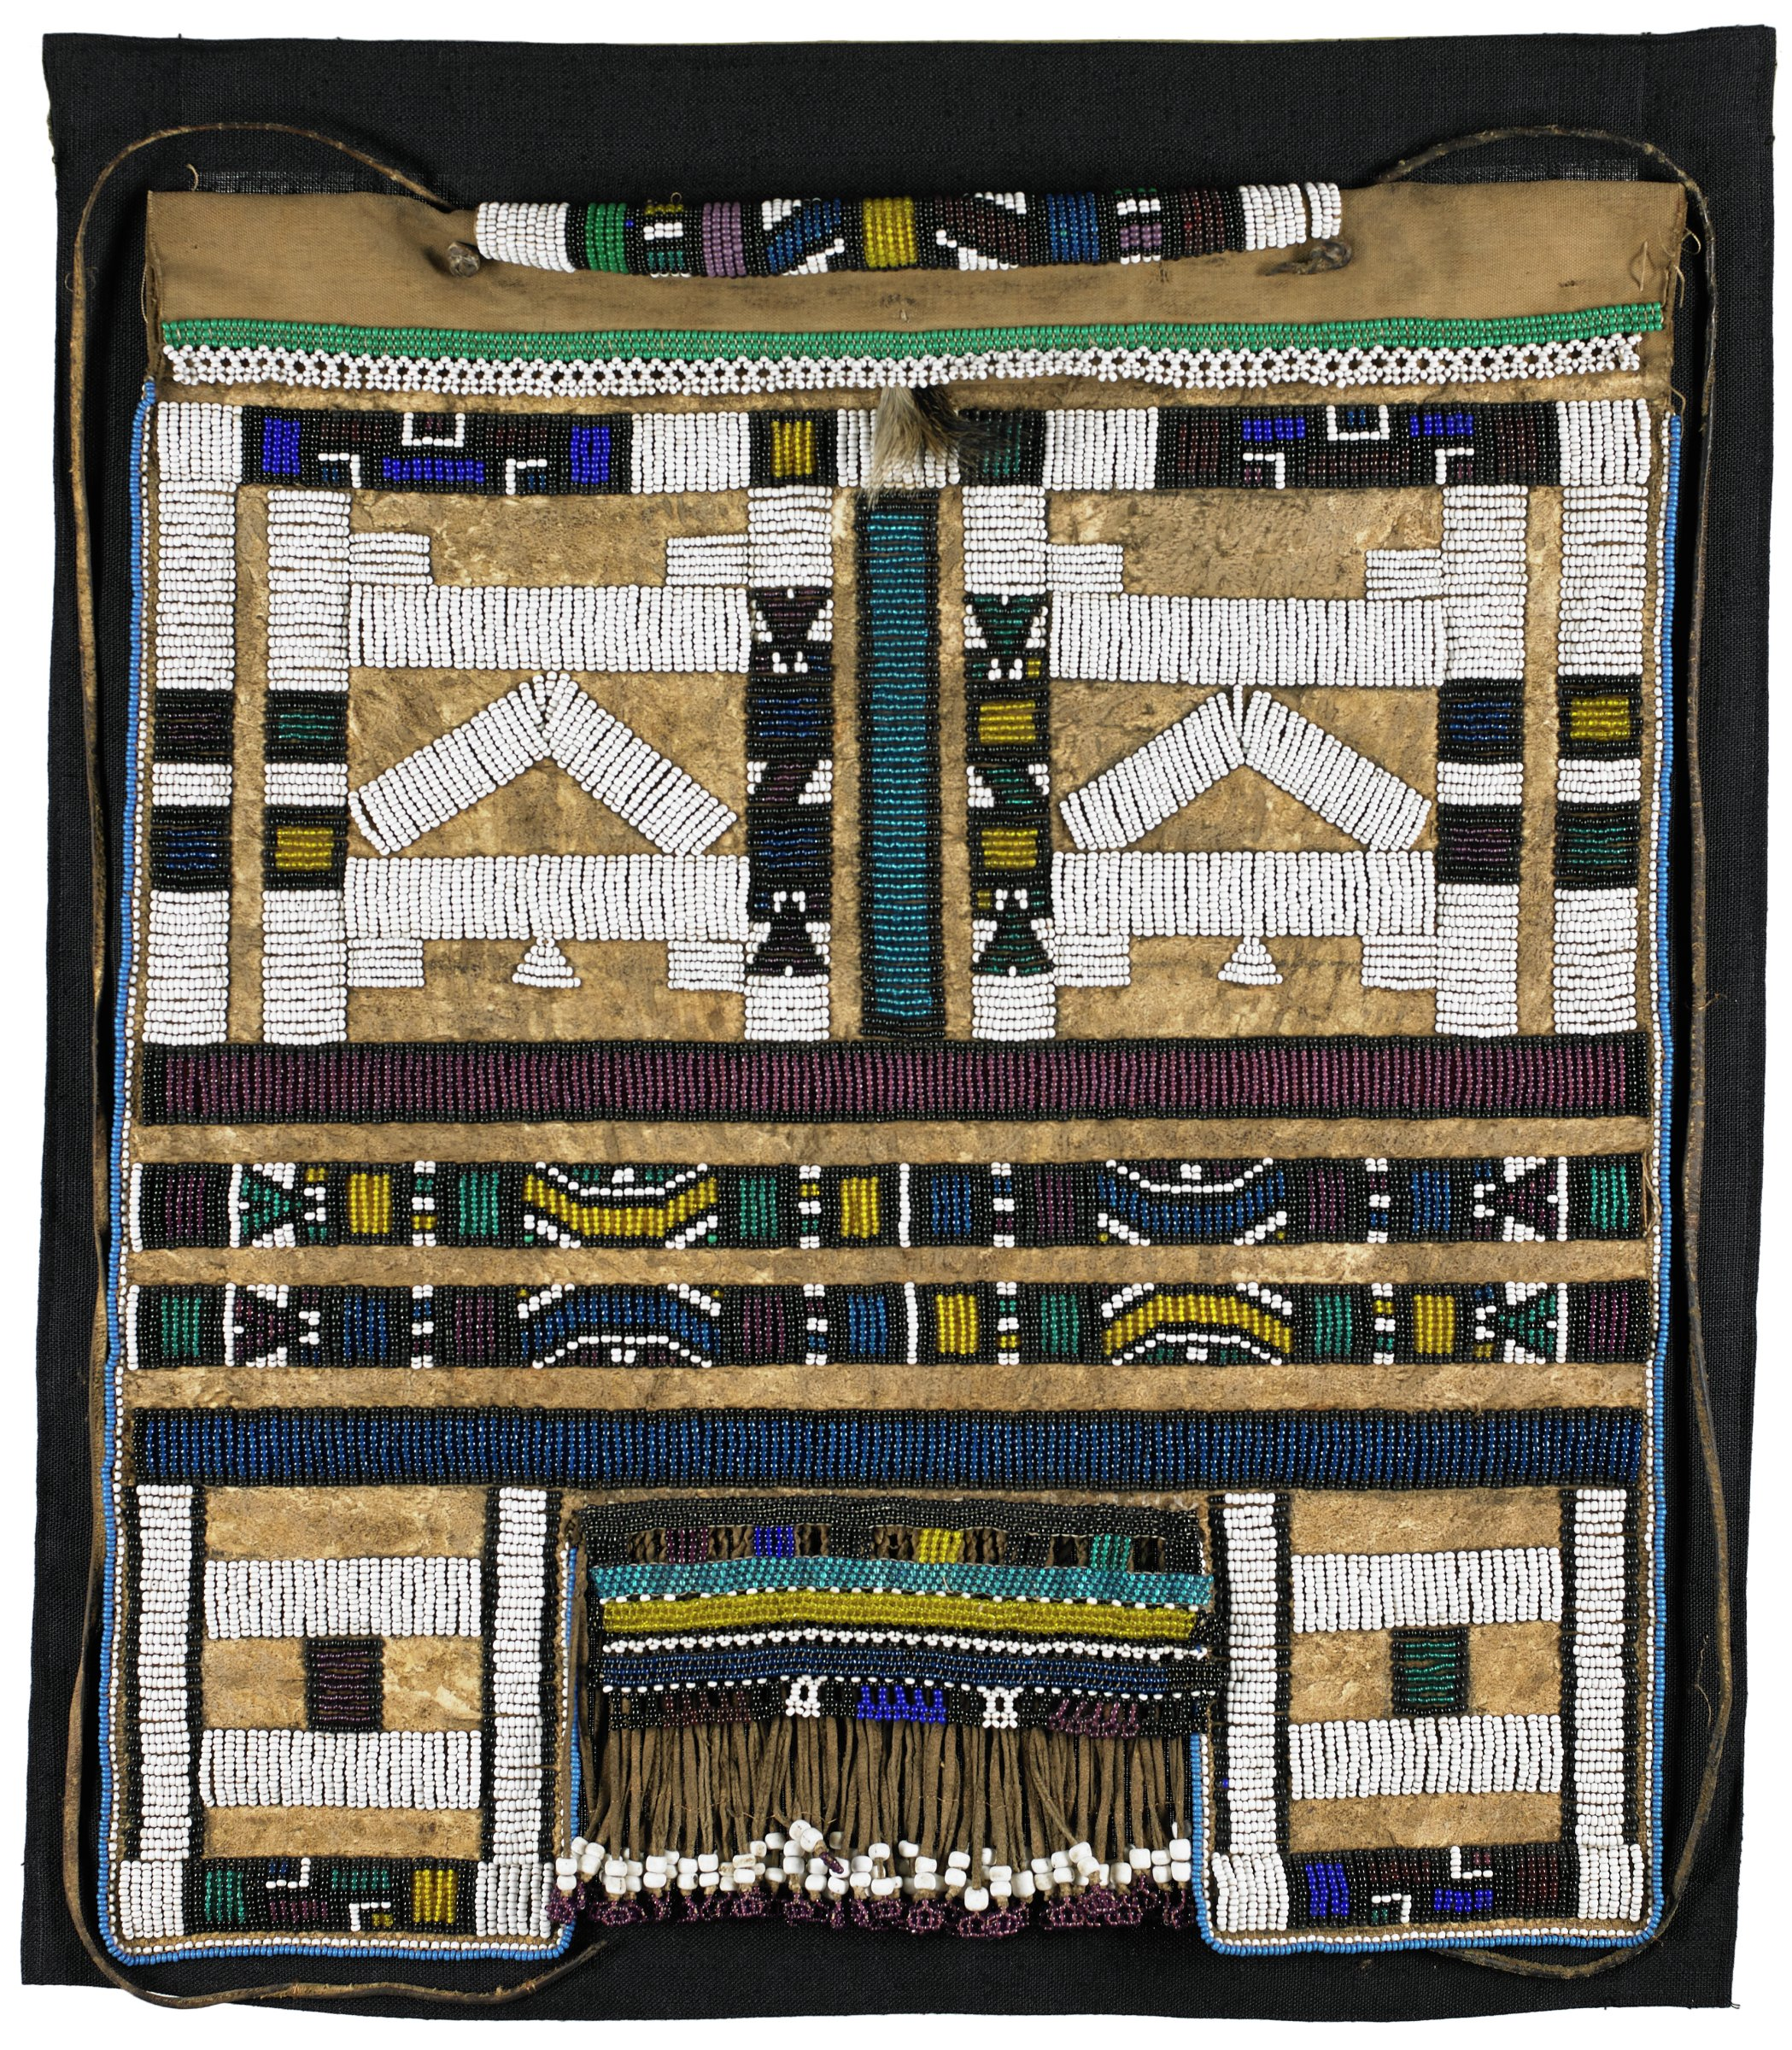 Apron also referred to as mepetu, mapoto, or liphotho; with fringe and geometric design